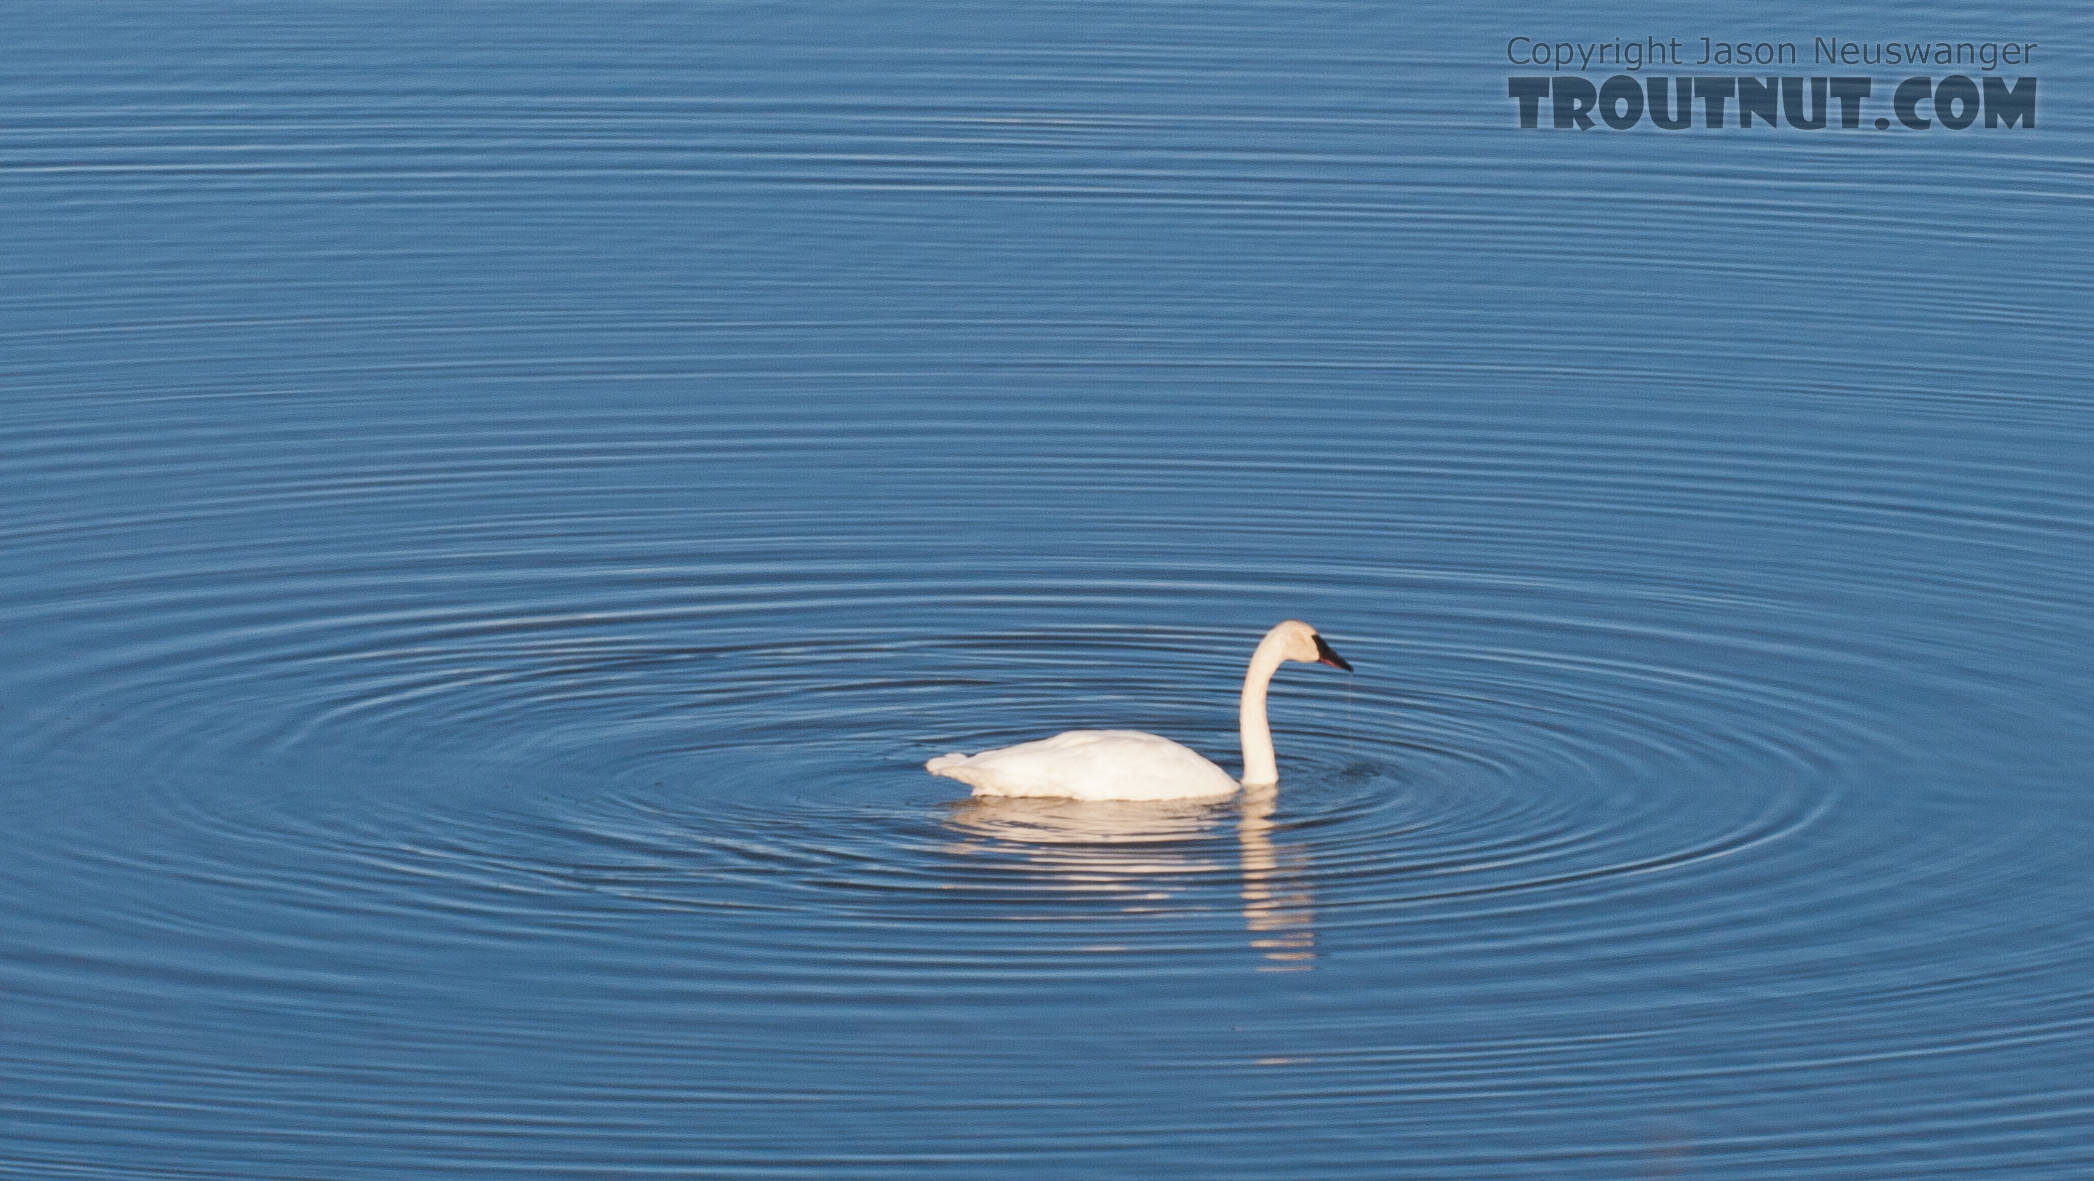 Trumpeter swan in 50-Mile Lake off the Denali Highway. From Denali Highway in Alaska.